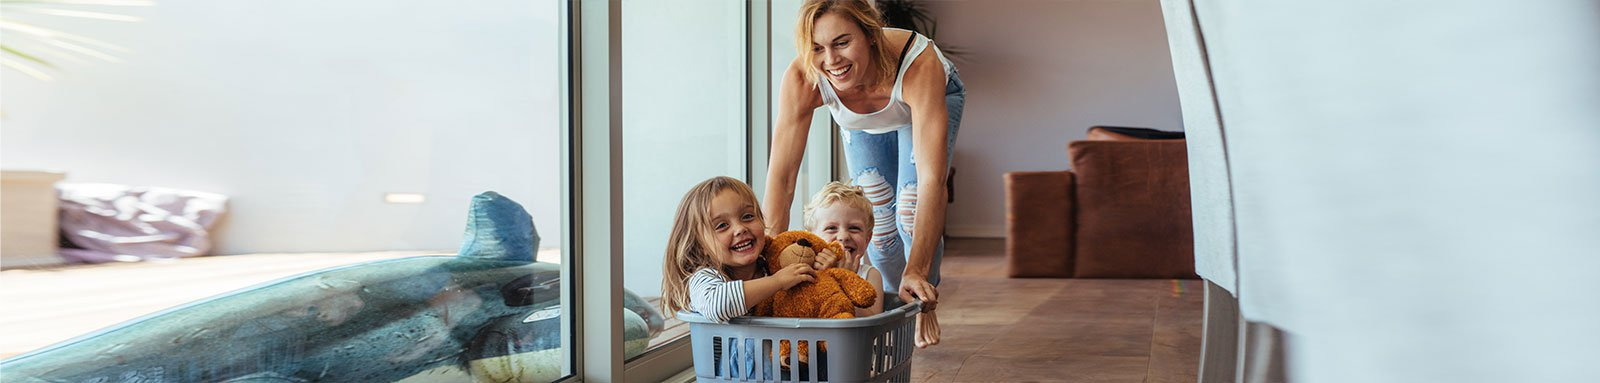 Mother pushing laundry basket with children